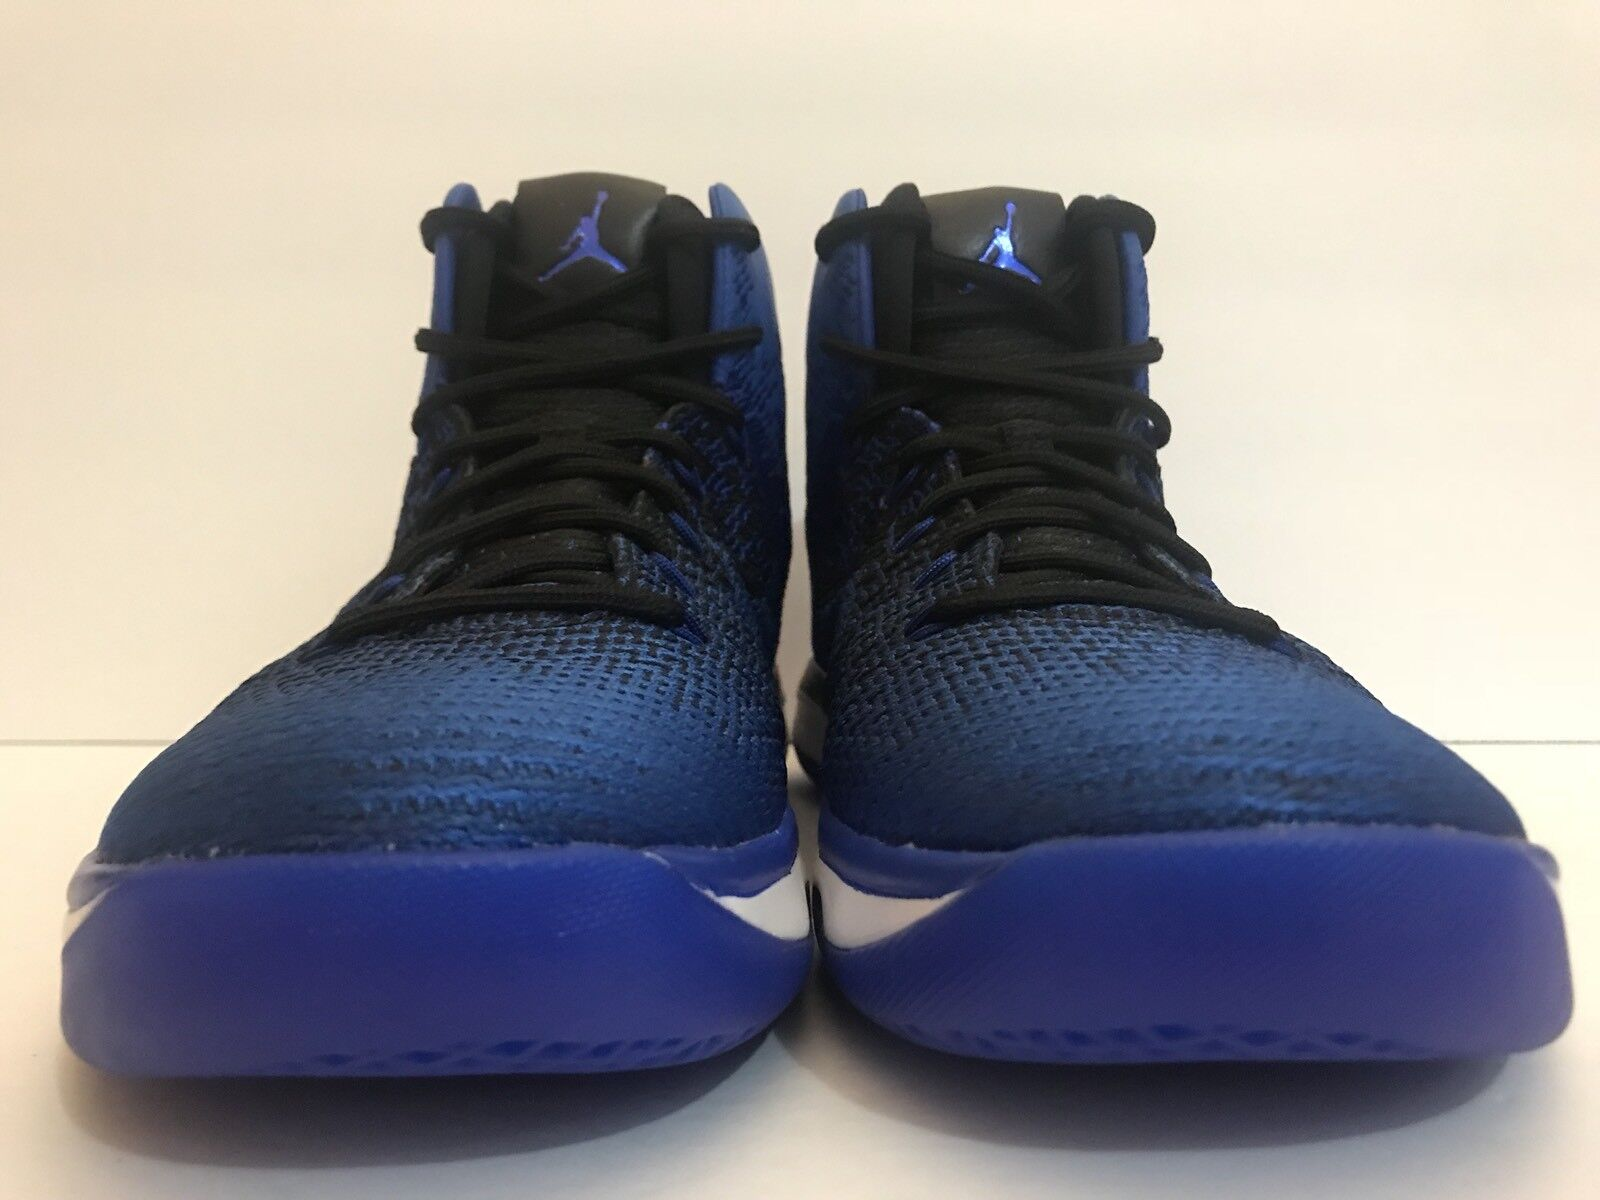 reputable site b3c5b 34f9c ... Air Air Air Jordan XXXI Basketball Shoes Black Game Royal 845037-007 Sz  ...